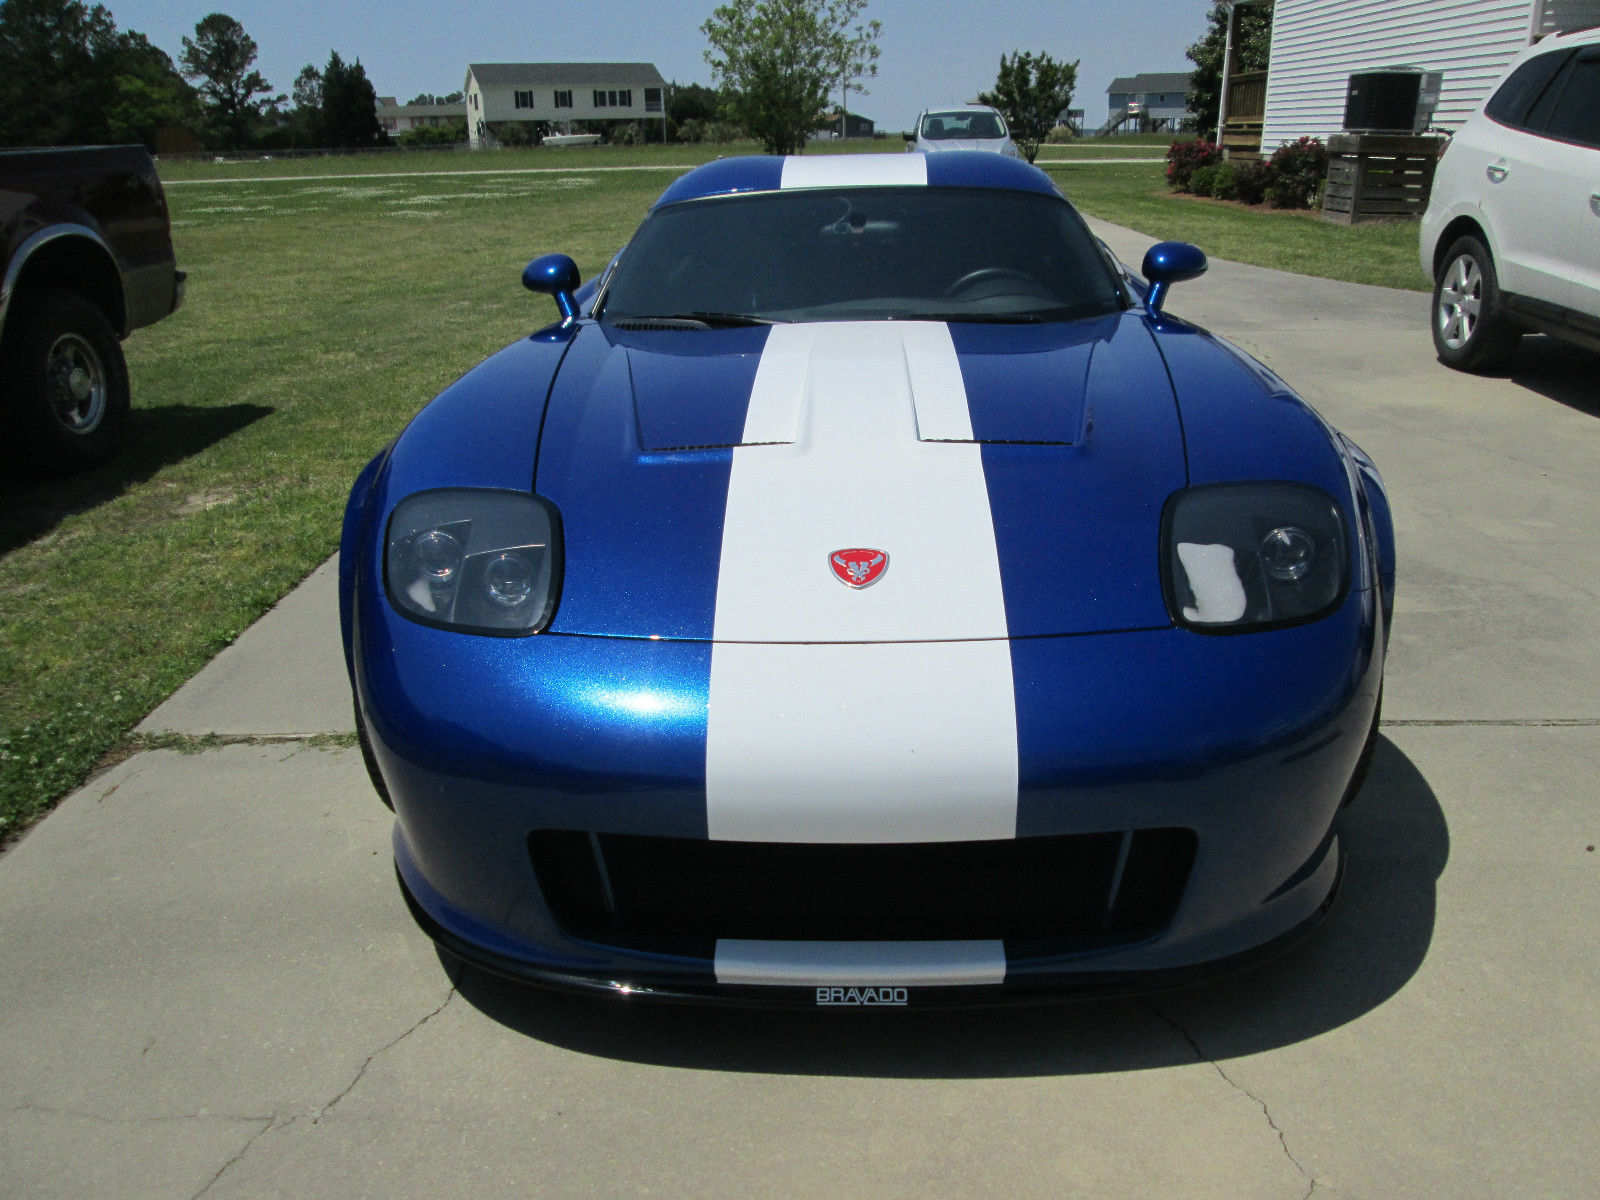 Grand Theft Auto Bravado Banshee For Sale On Ebay